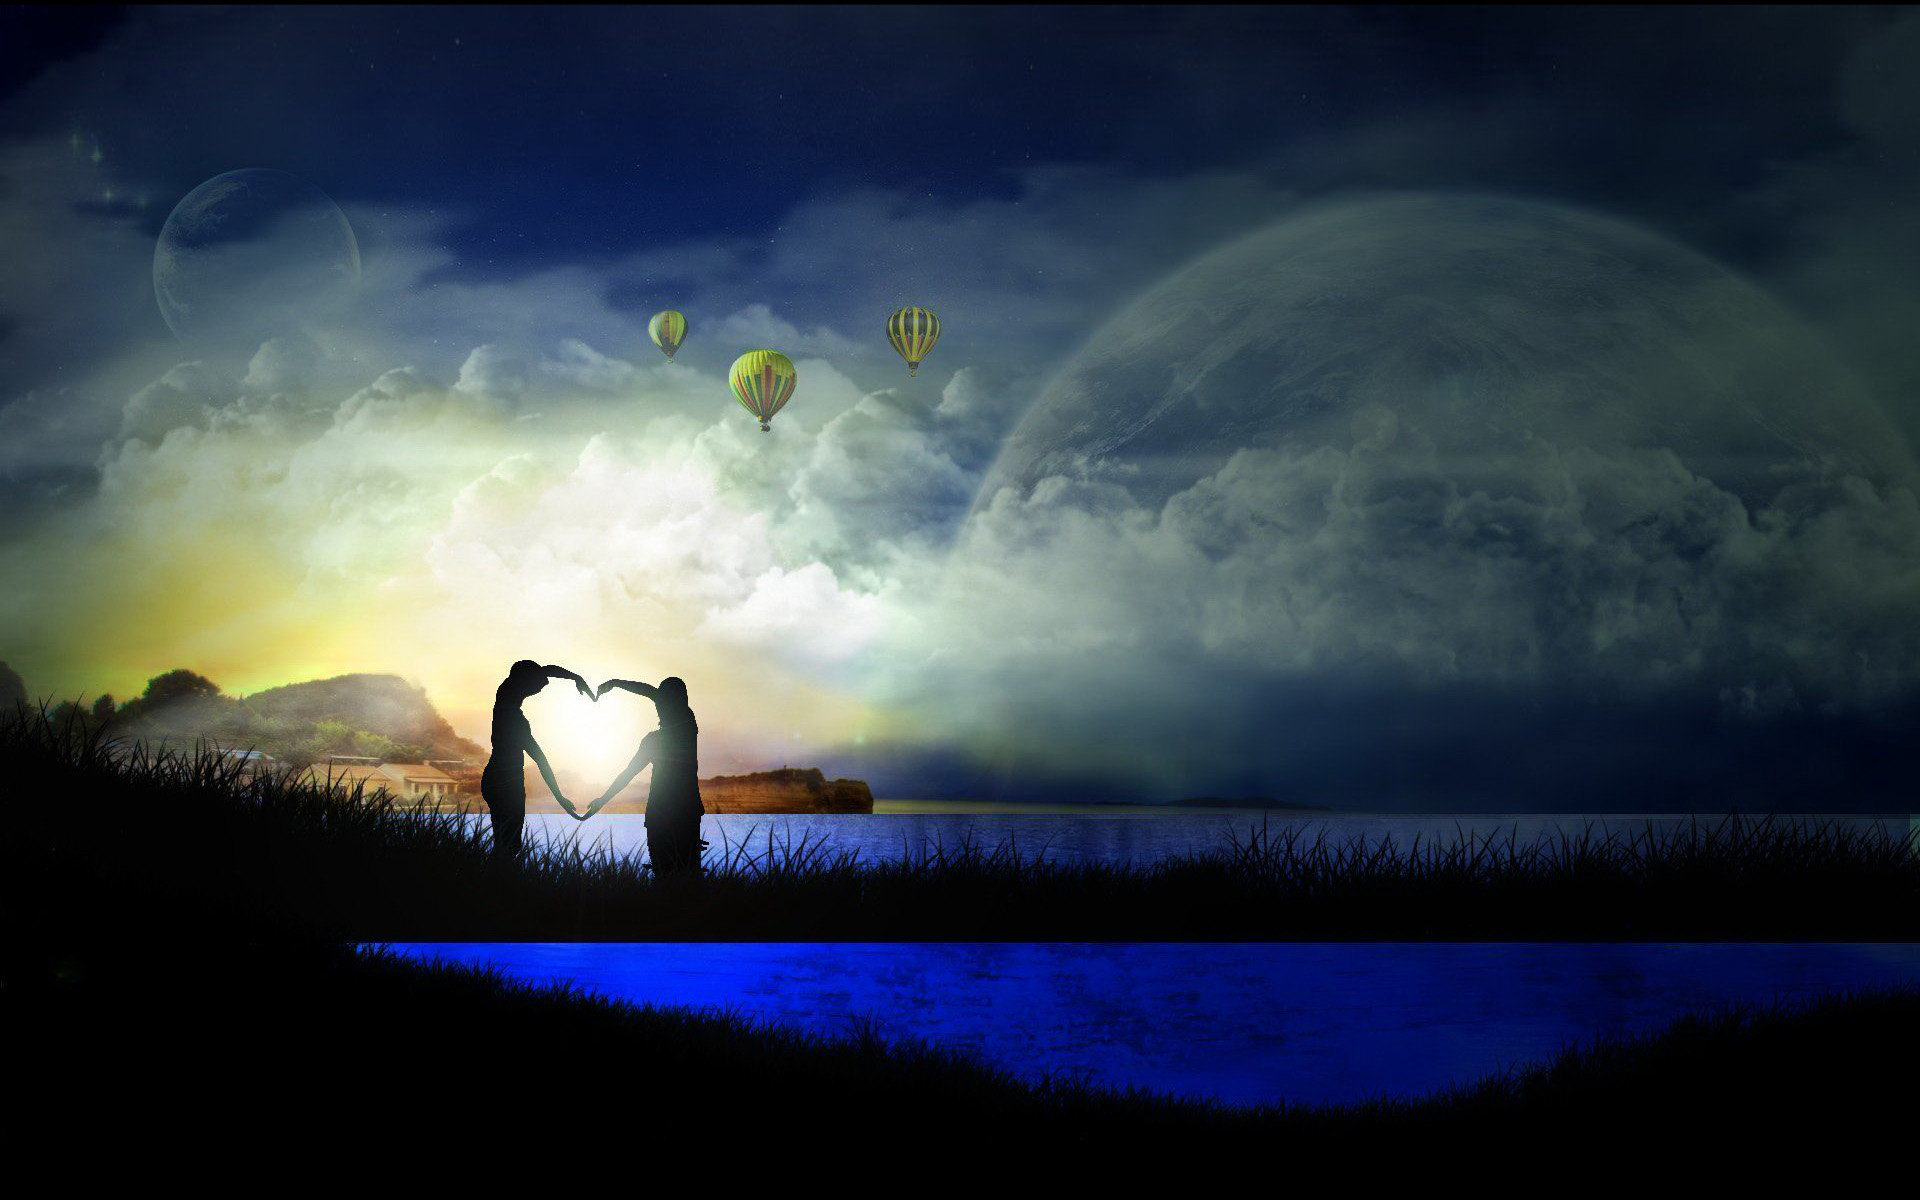 Wallpaper For Laptop Of Love : Romantic Wallpapers Best Wallpapers